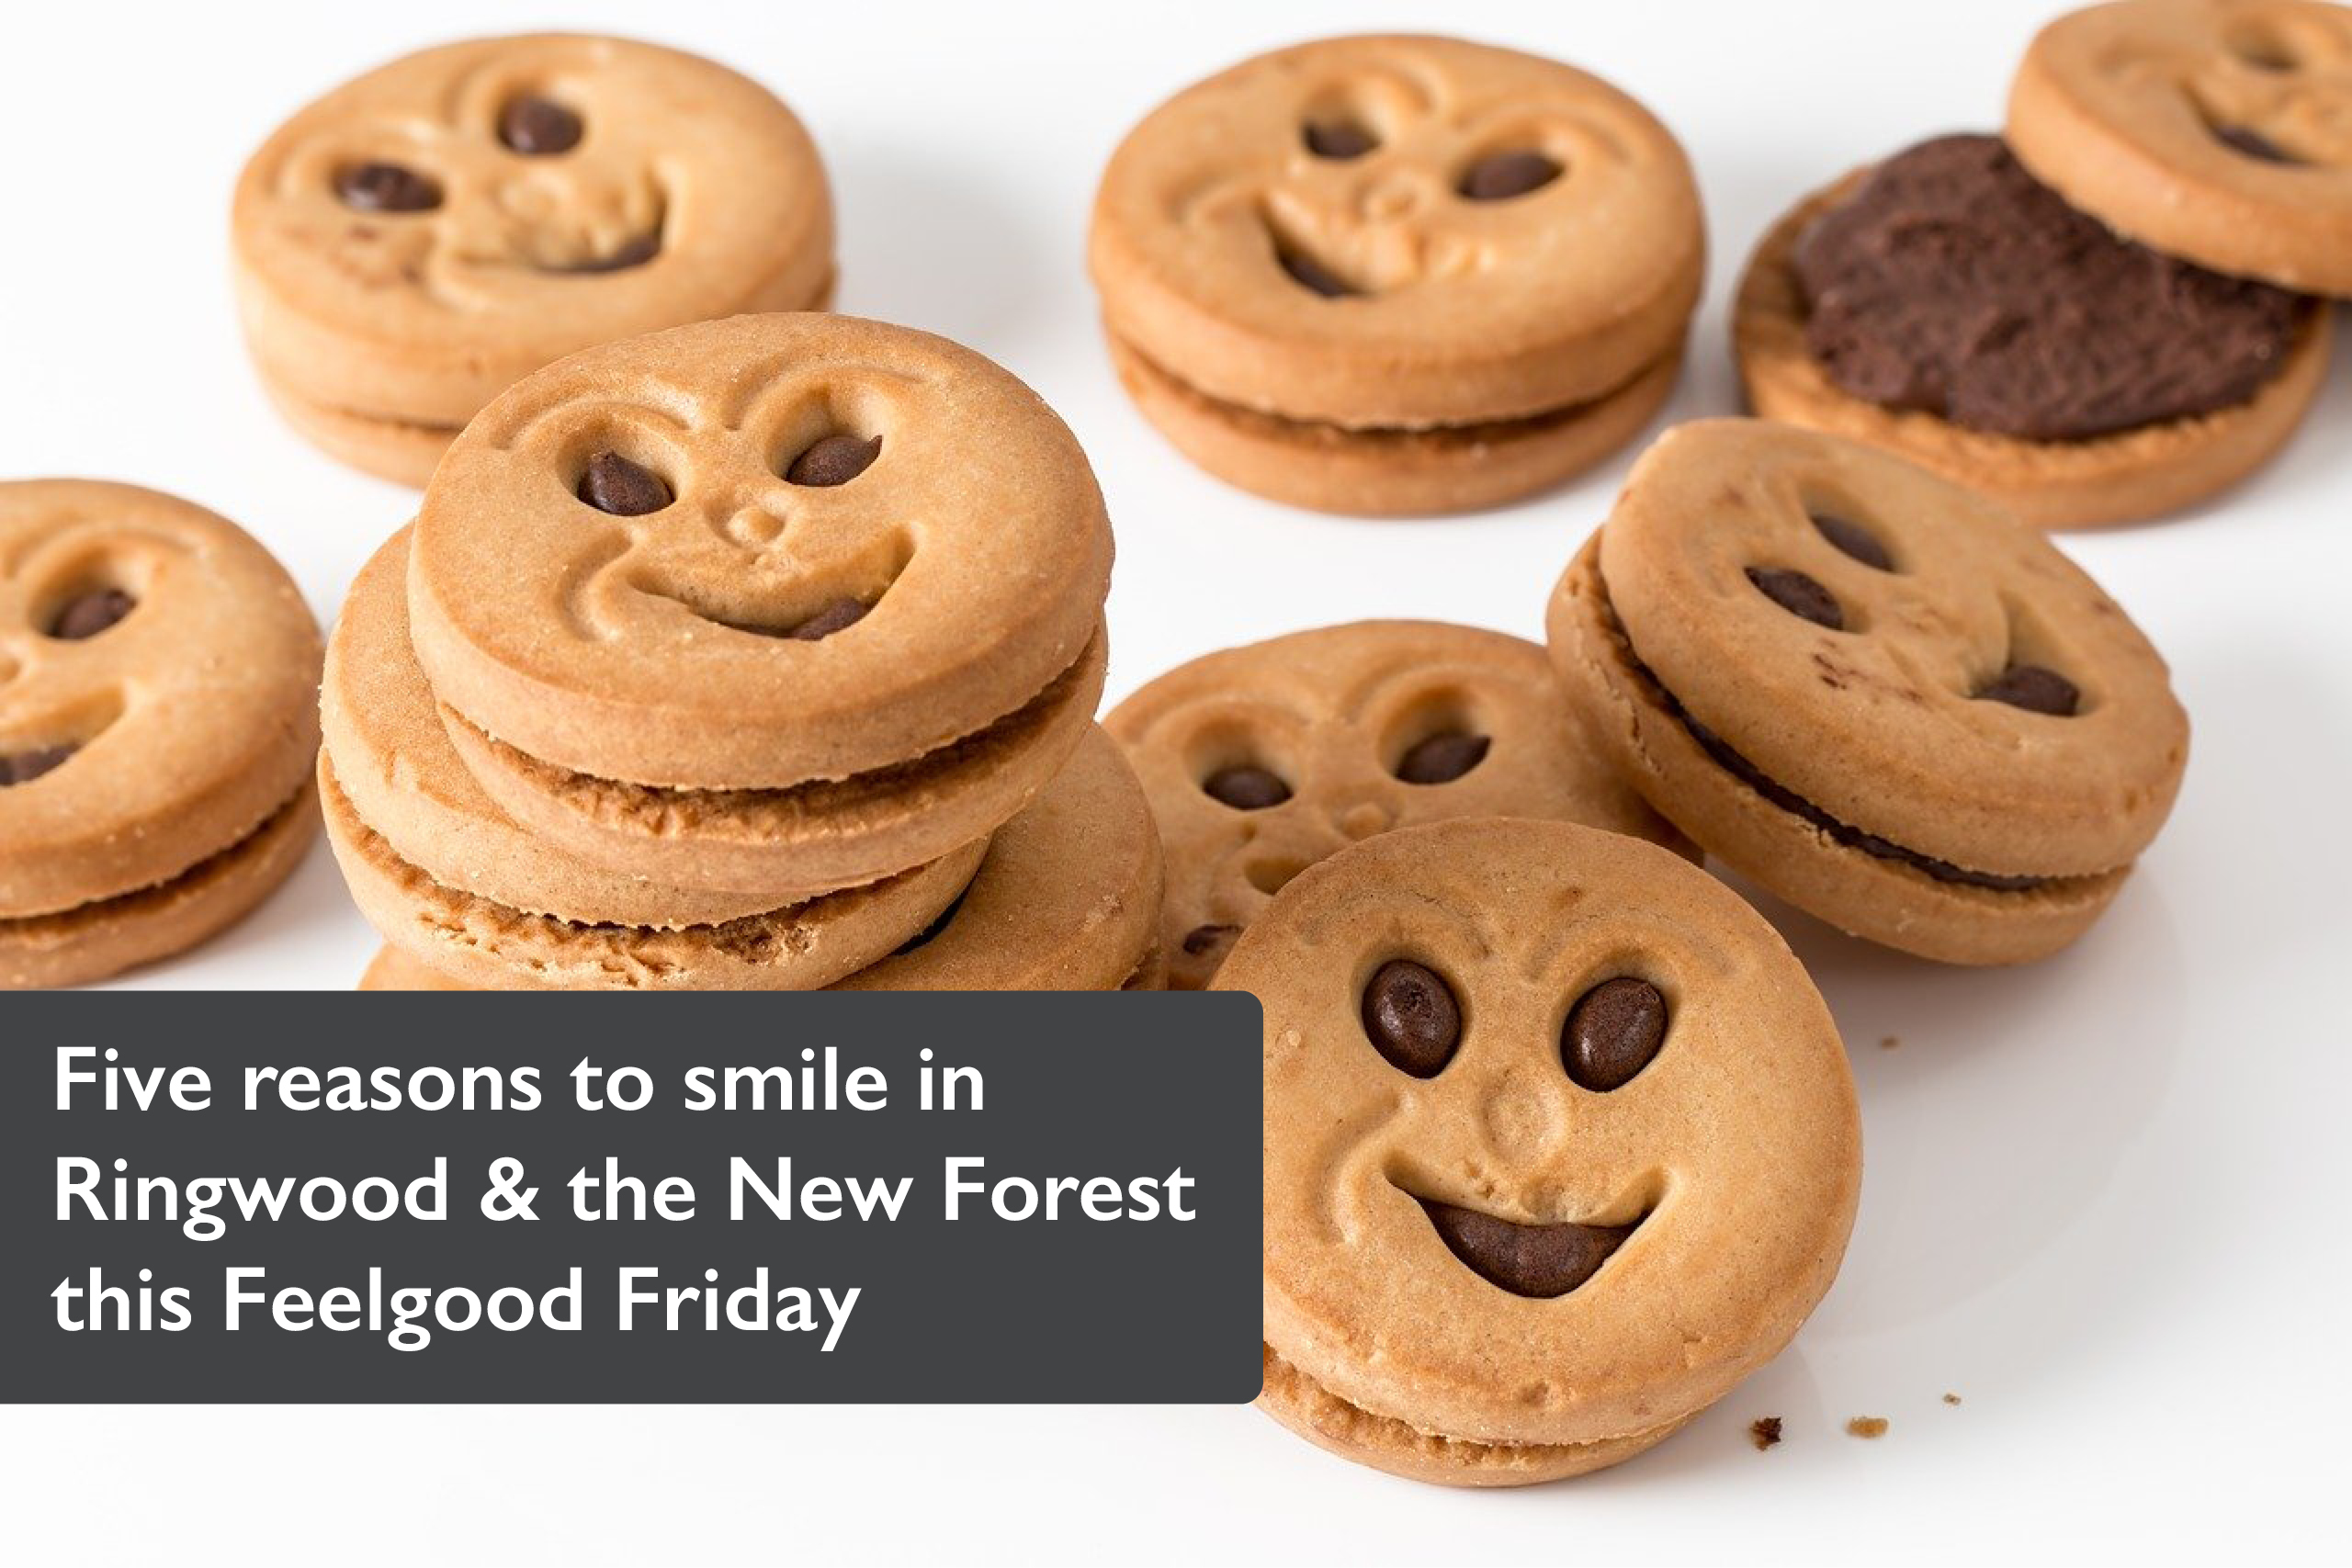 Five reasons to smile in Ringwood & the New Forest this Feelgood Friday